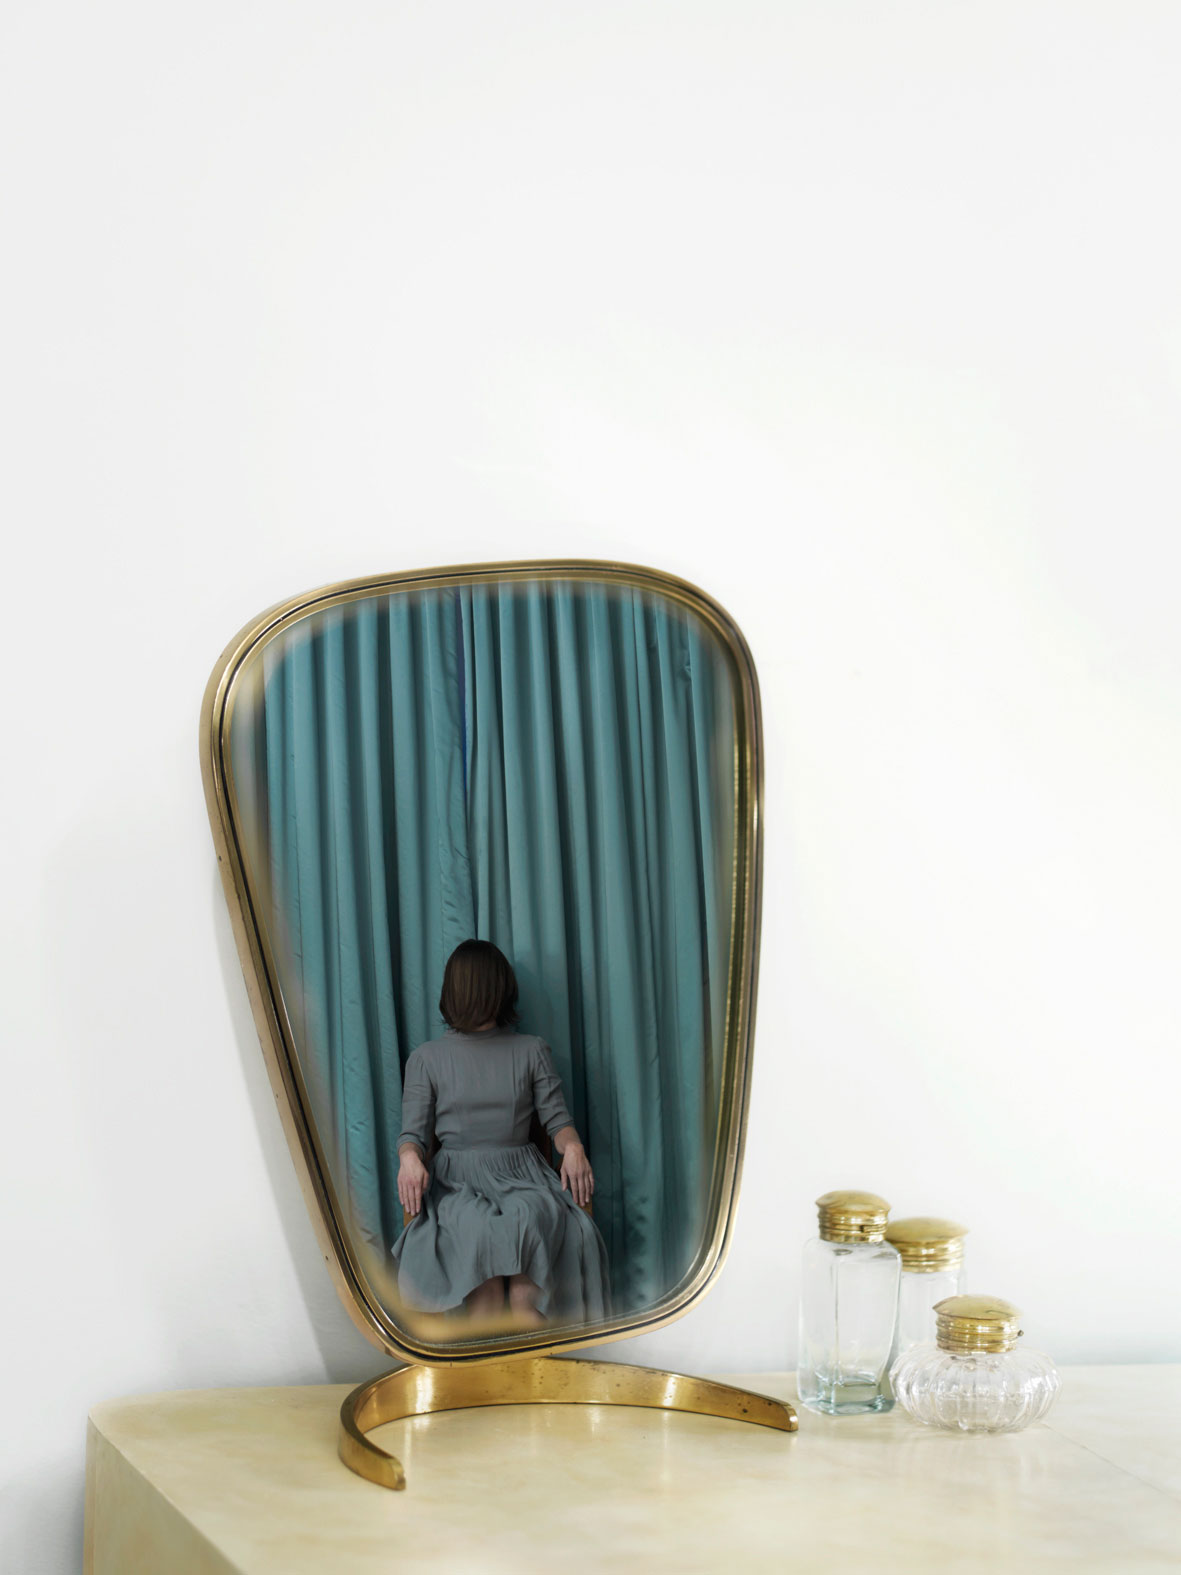 Anja Niemi, Do Not Disturb | http://www.yellowtrace.com.au/2013/10/17/anja-niemi-self-photography/